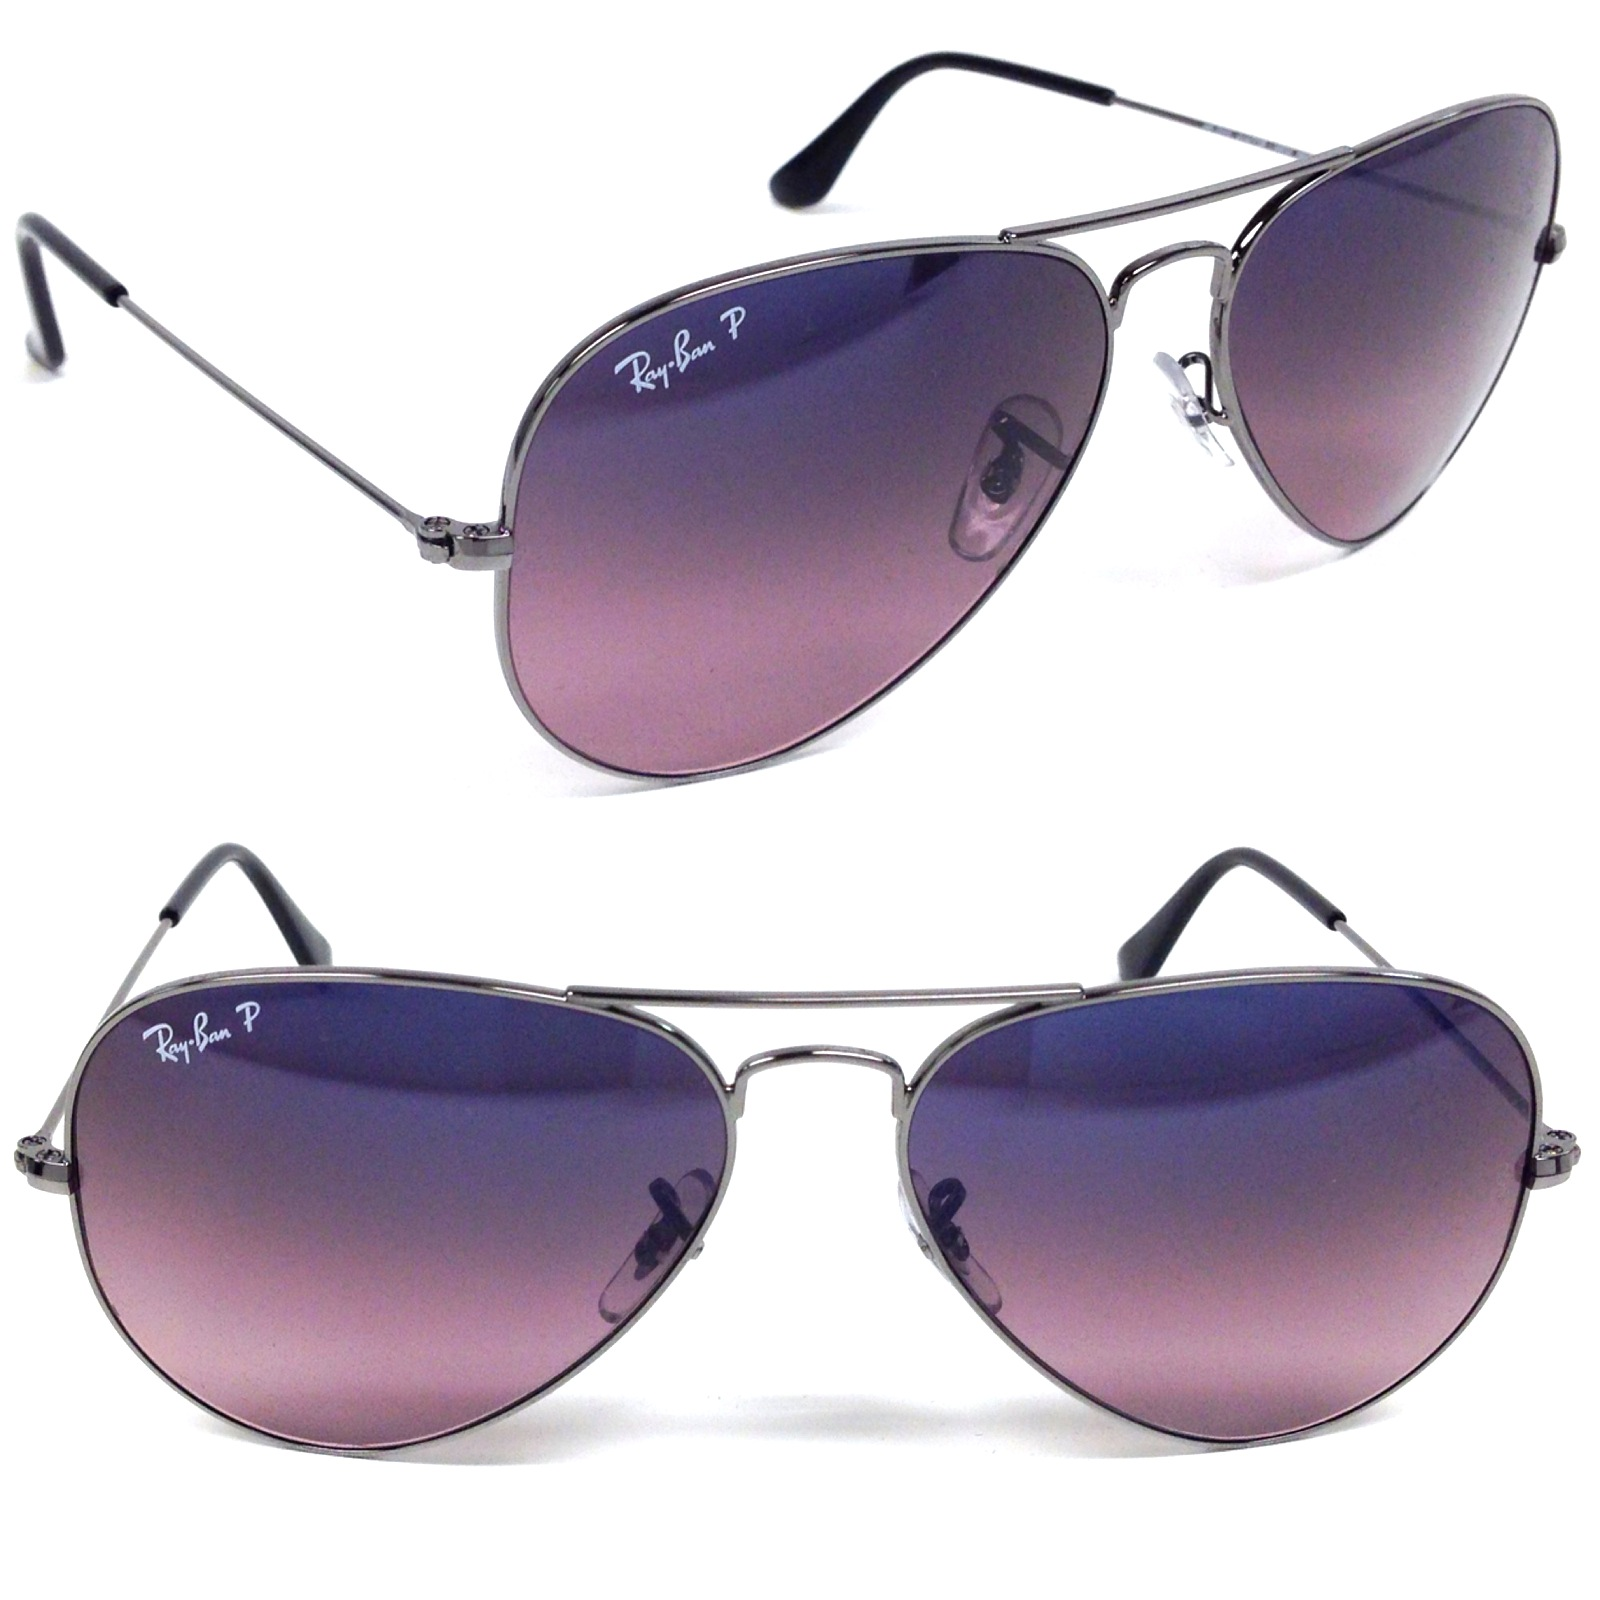 aviator colors  Ray Ban Aviator RB3025 004/77 Polarized Lens - 喙佮抚喙堗笝喔佮副喔權箒喔斷笖 Ray-Ban ...